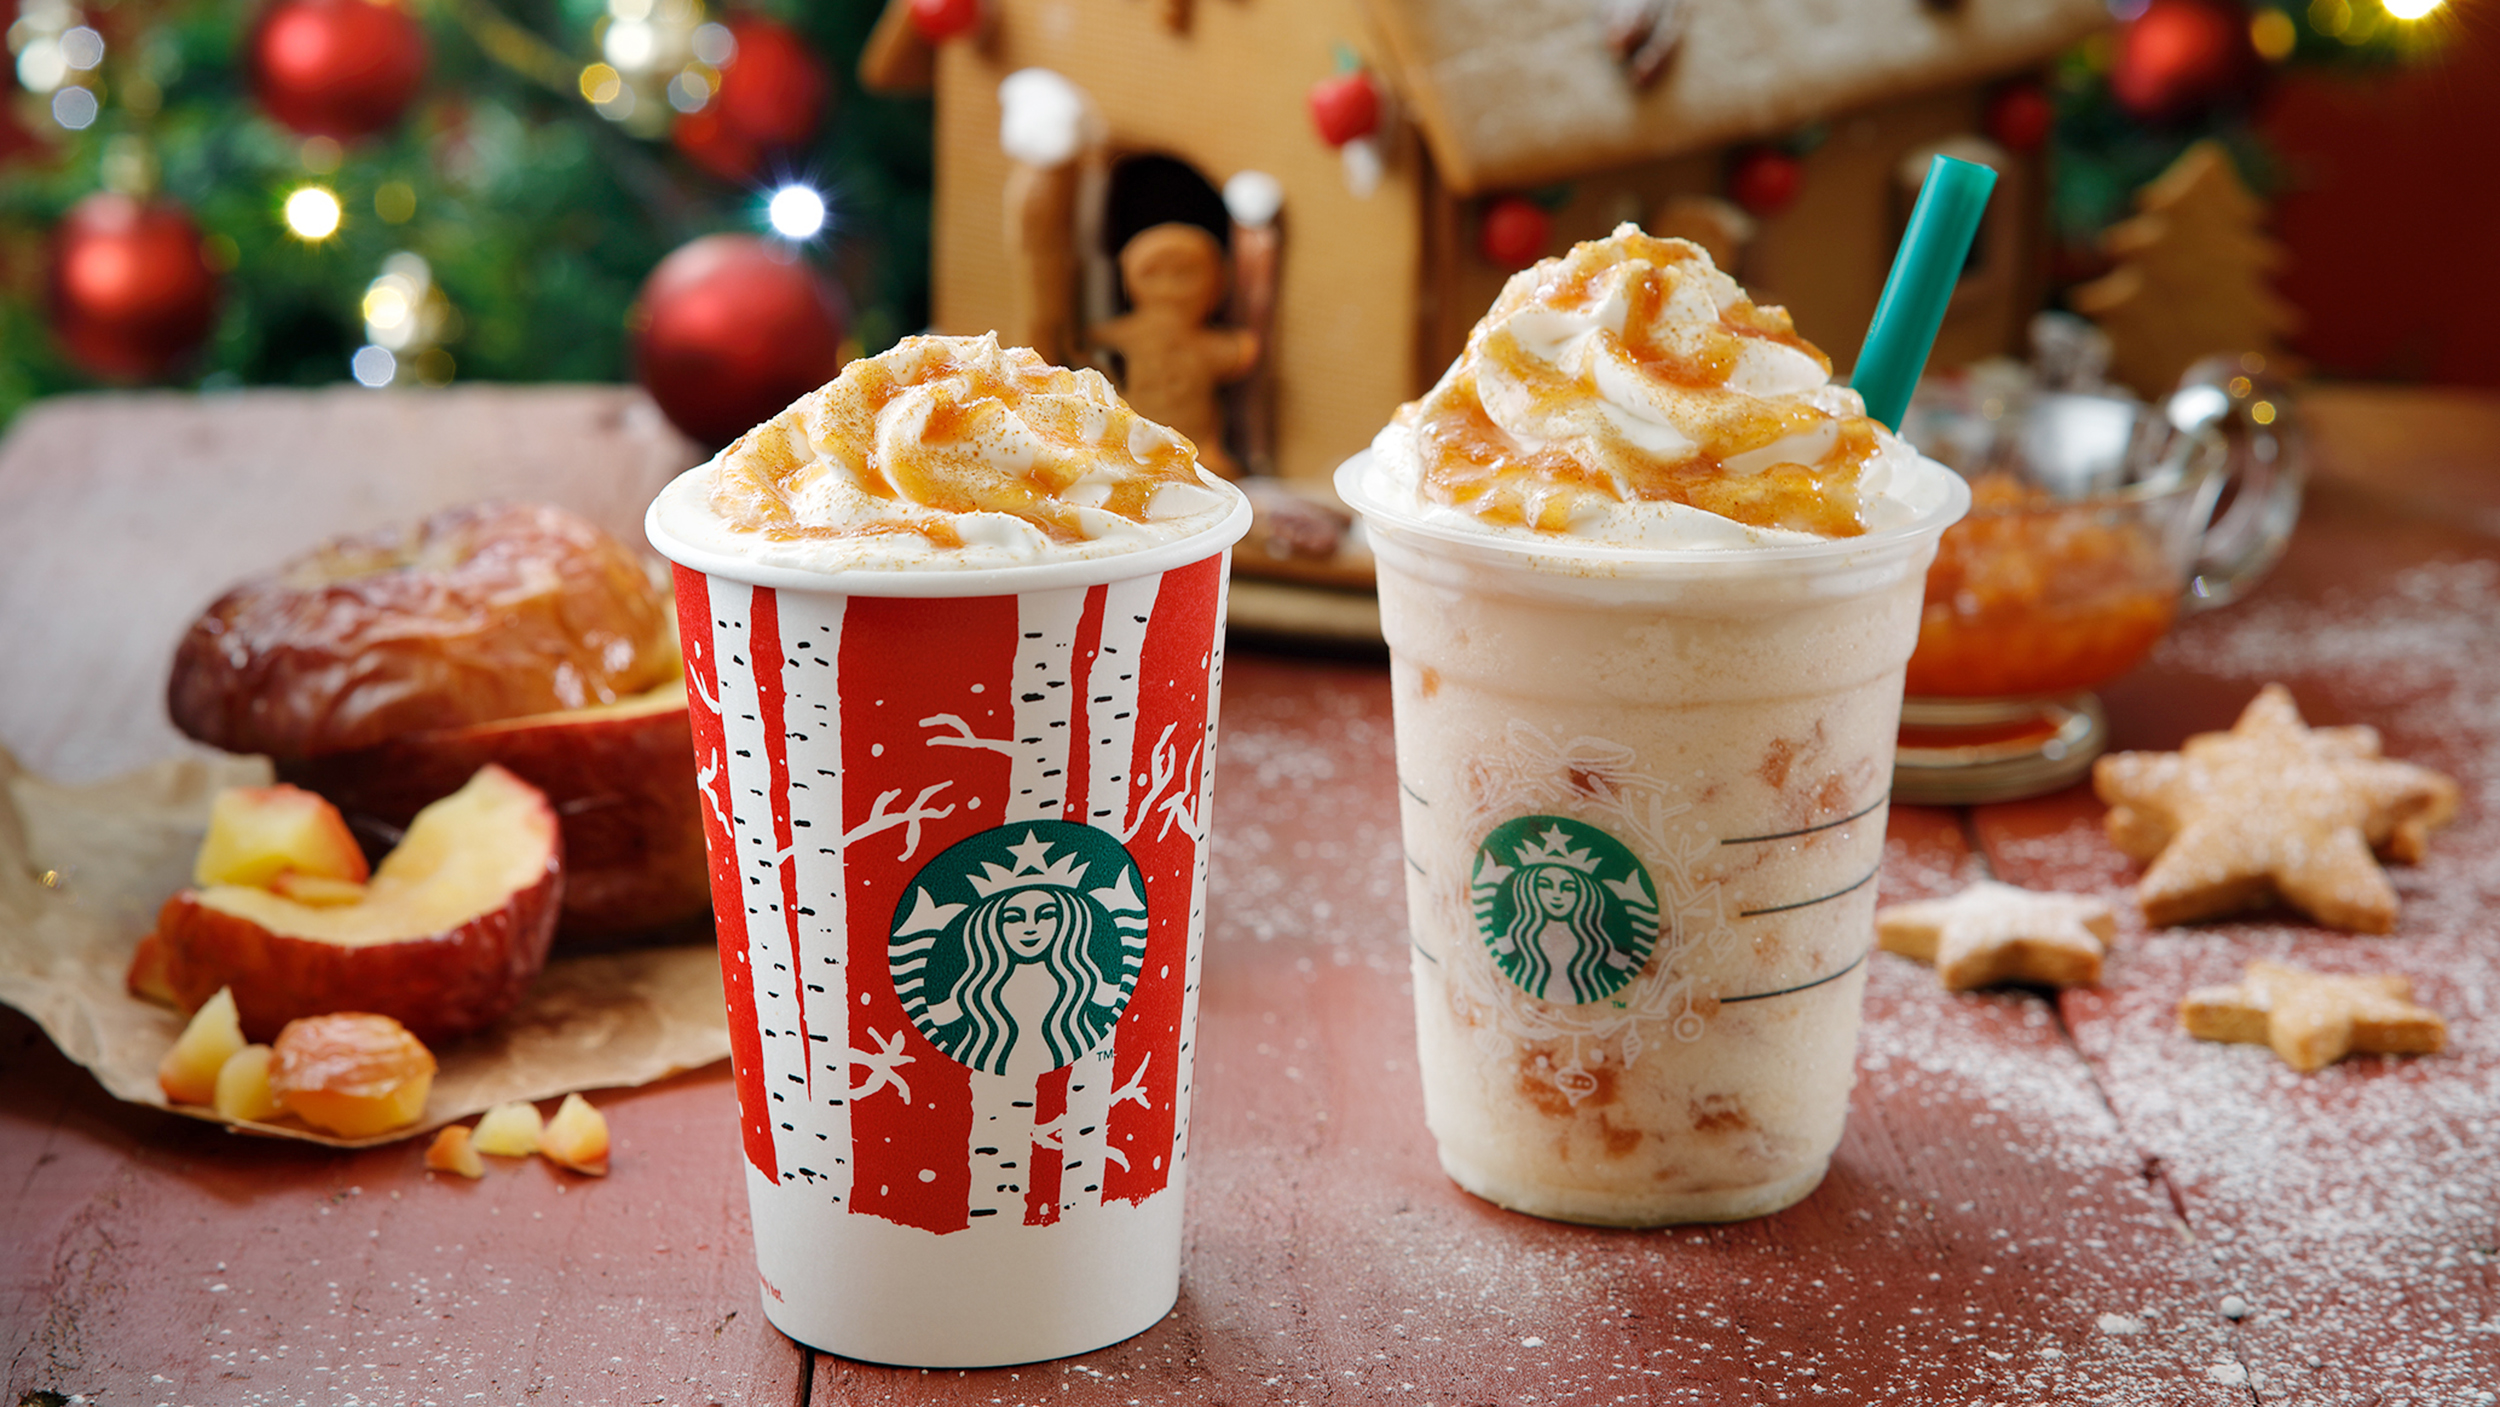 starbucks in japan In japan, you can experience it for yourself at most starbucks outlets imagine sipping away at your dark mocha frappuccino while surfing for pictures of cats in public imagine sipping away at your dark mocha frappuccino while surfing for pictures of cats in public.